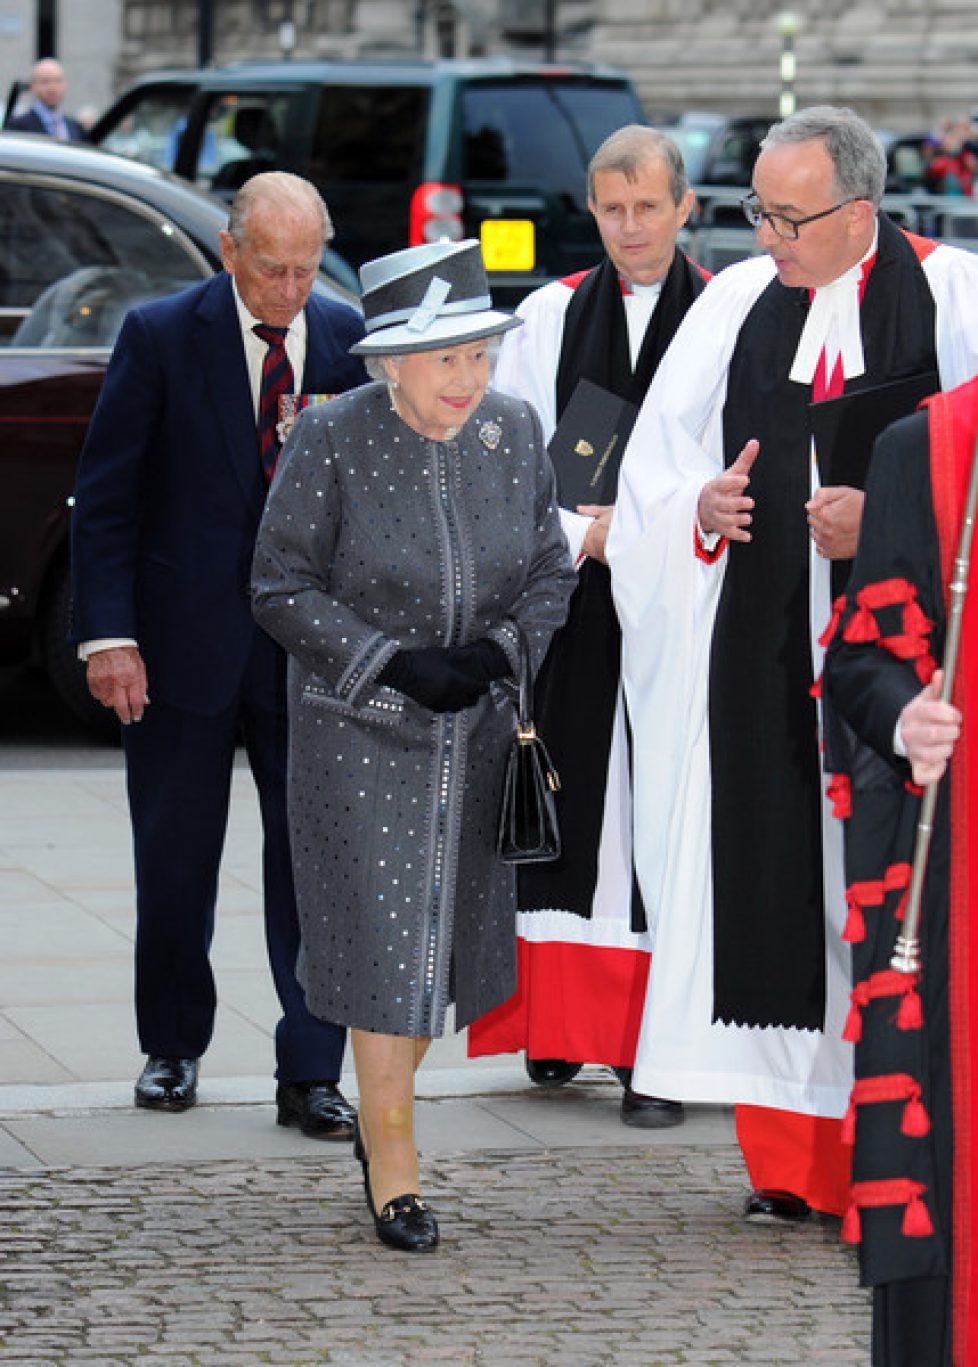 Queen+Duke+Edinburgh+Attend+Service+Eve+Centenary+NkEAnFgCJc2l